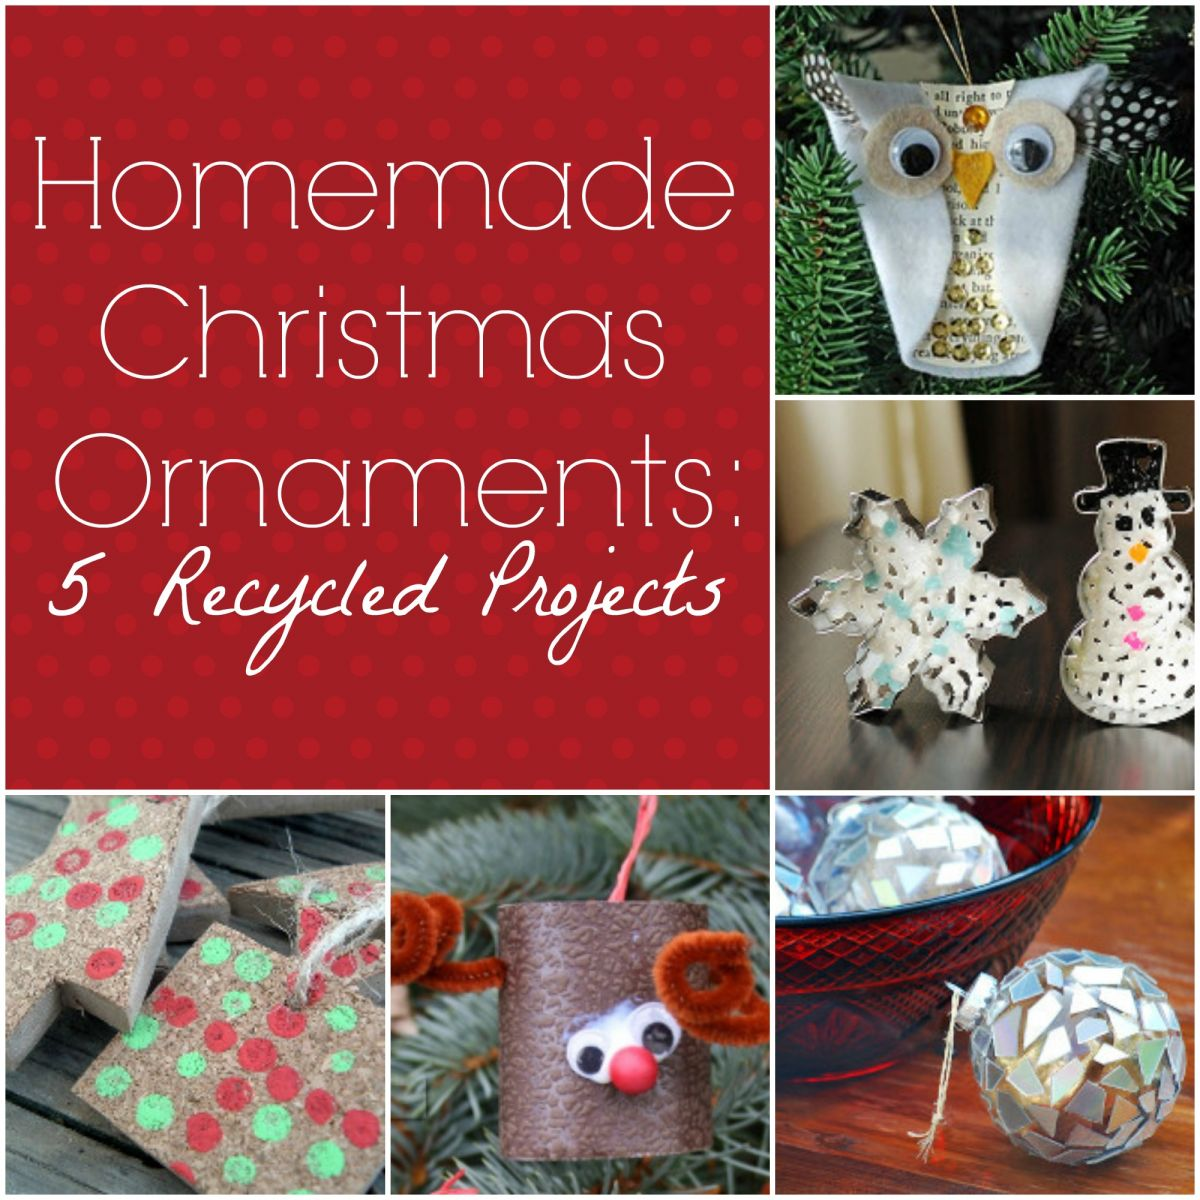 Homemade Christmas Ornaments: 5 Recycled Projects